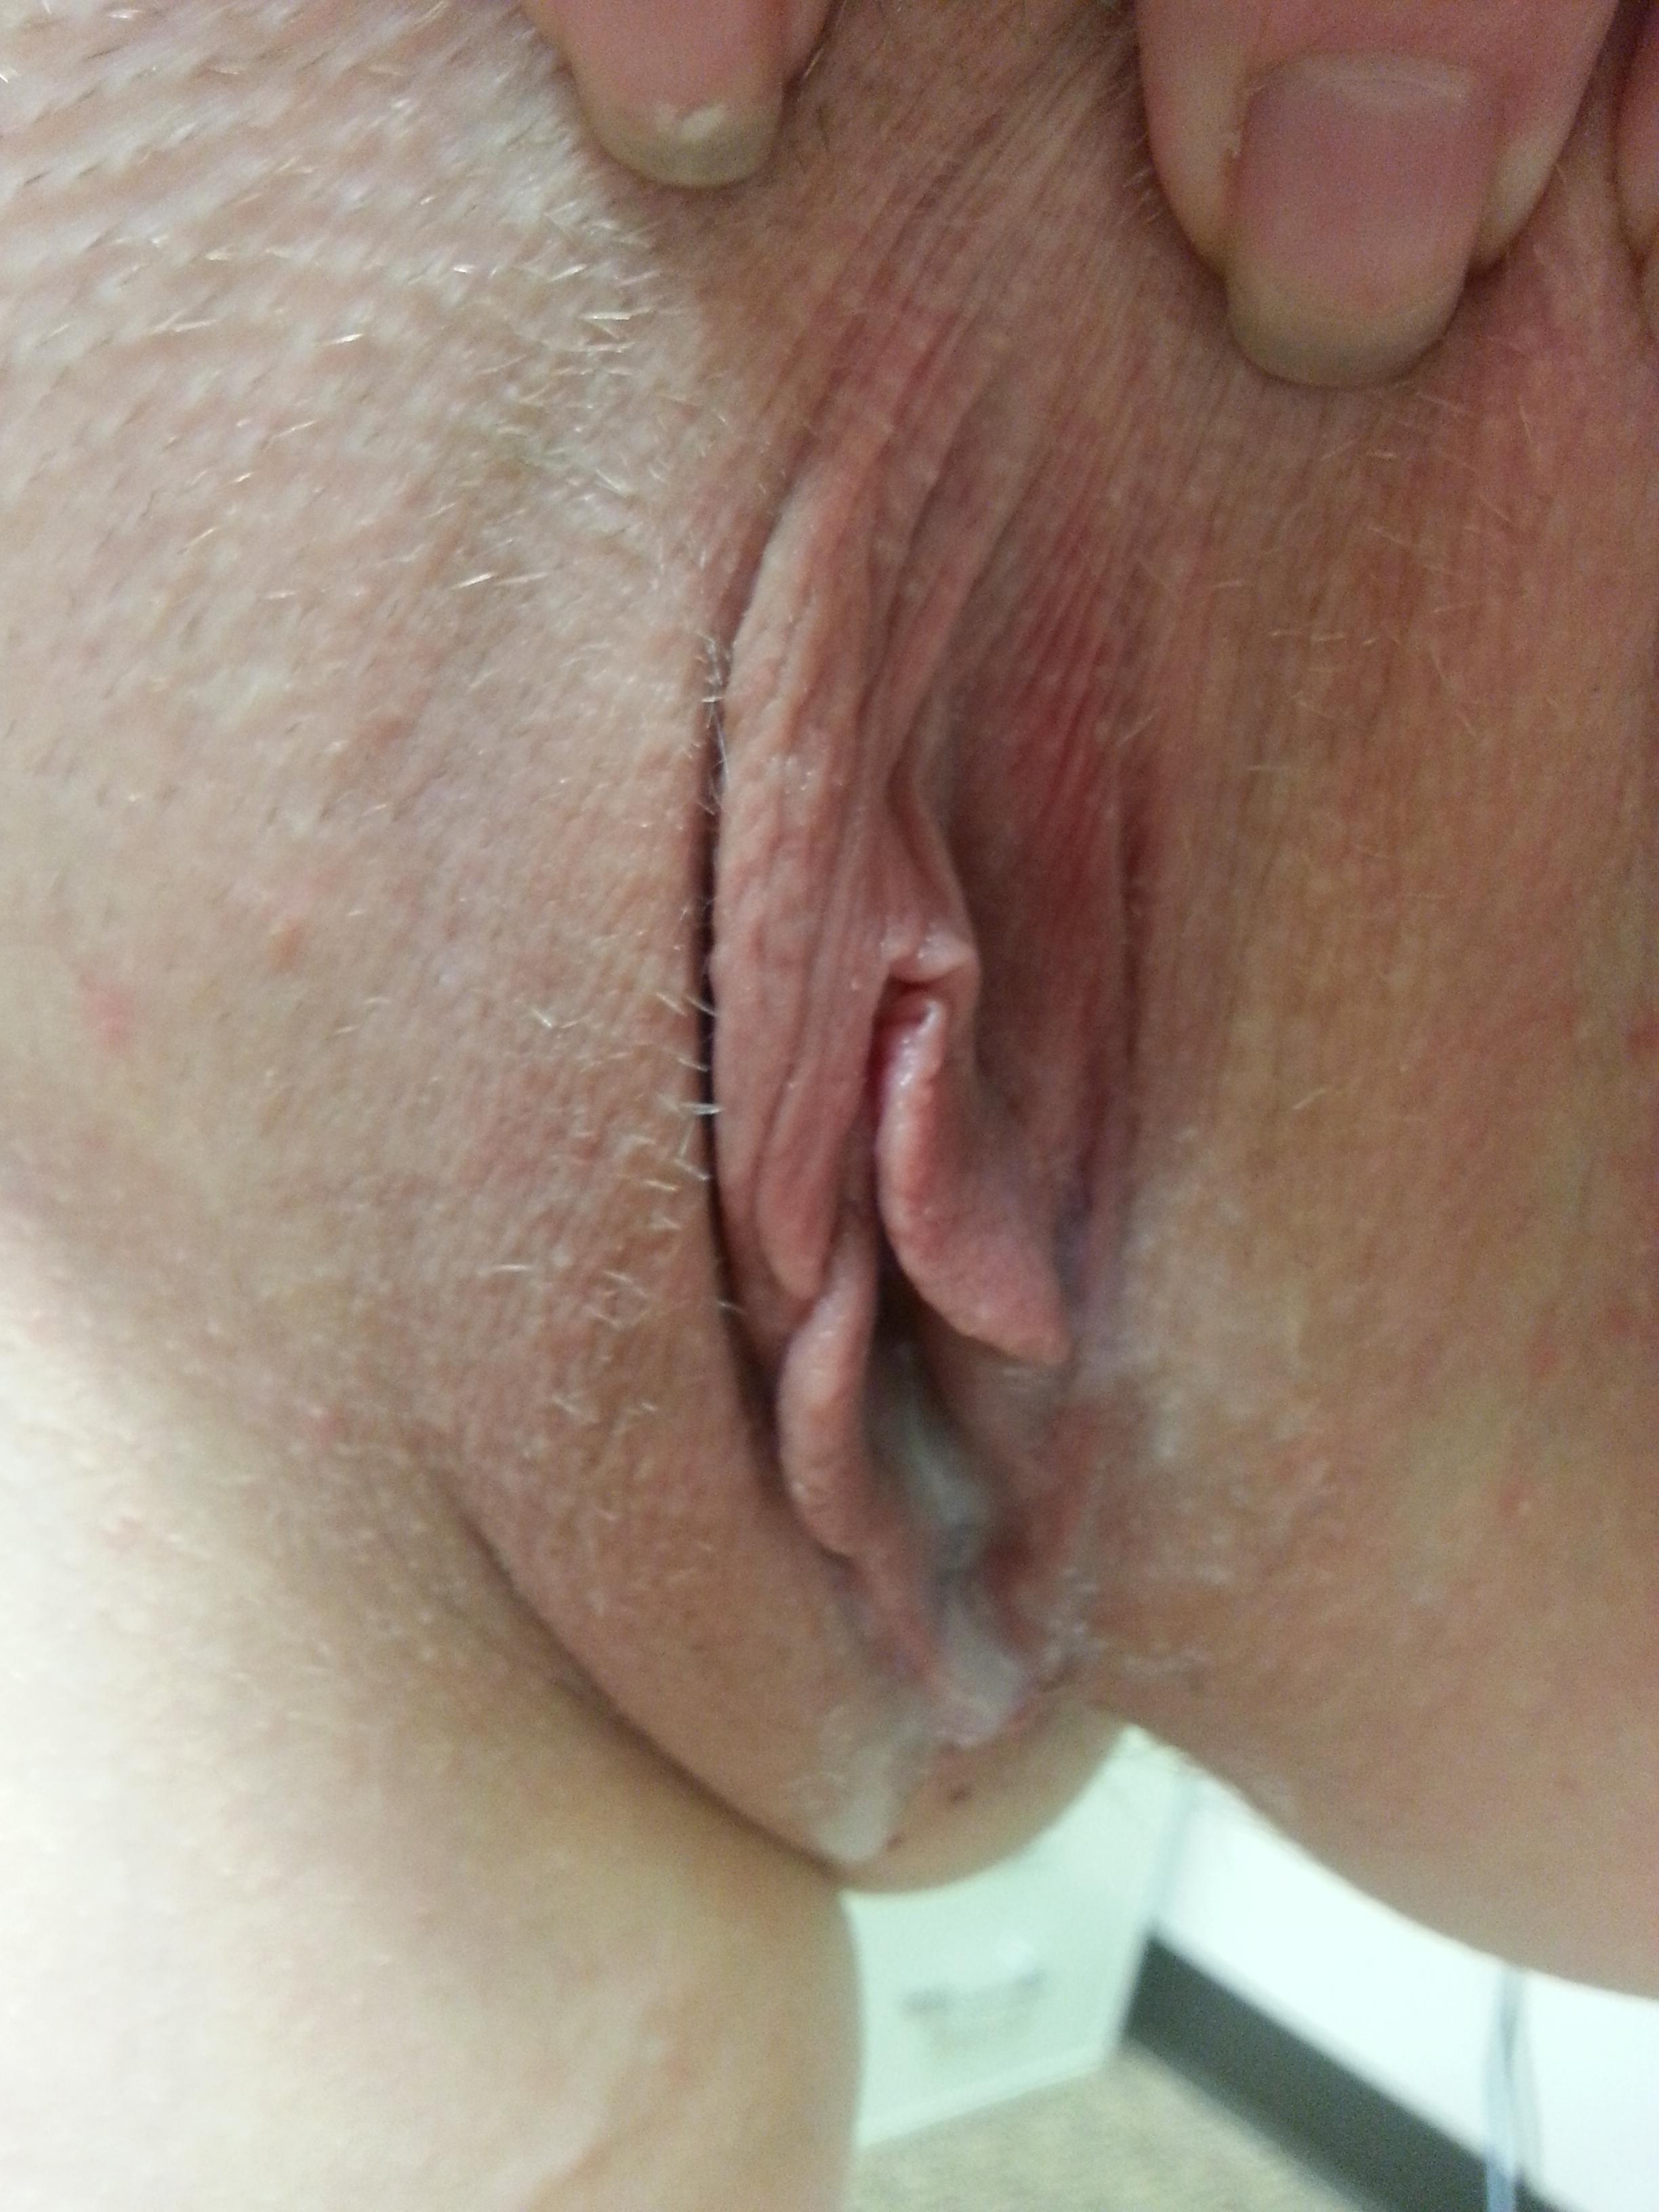 Cum with pussy pink filled